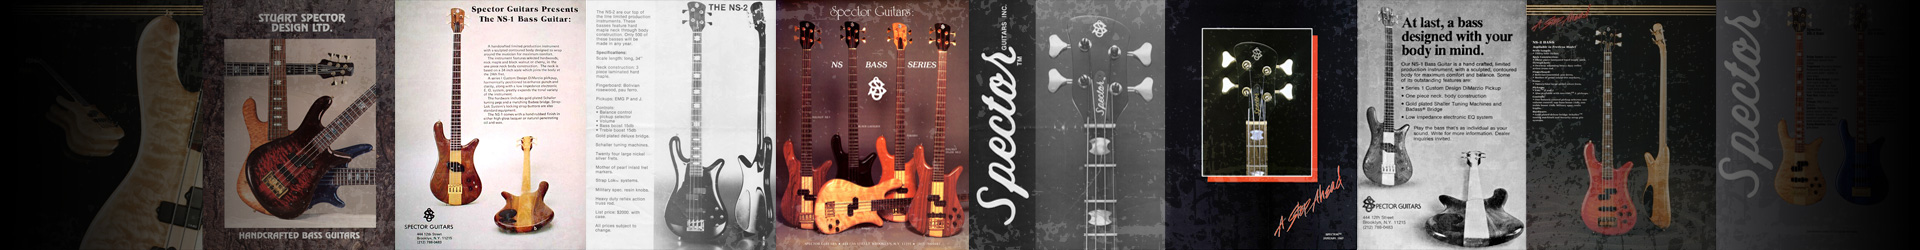 banner of history of Spector basses